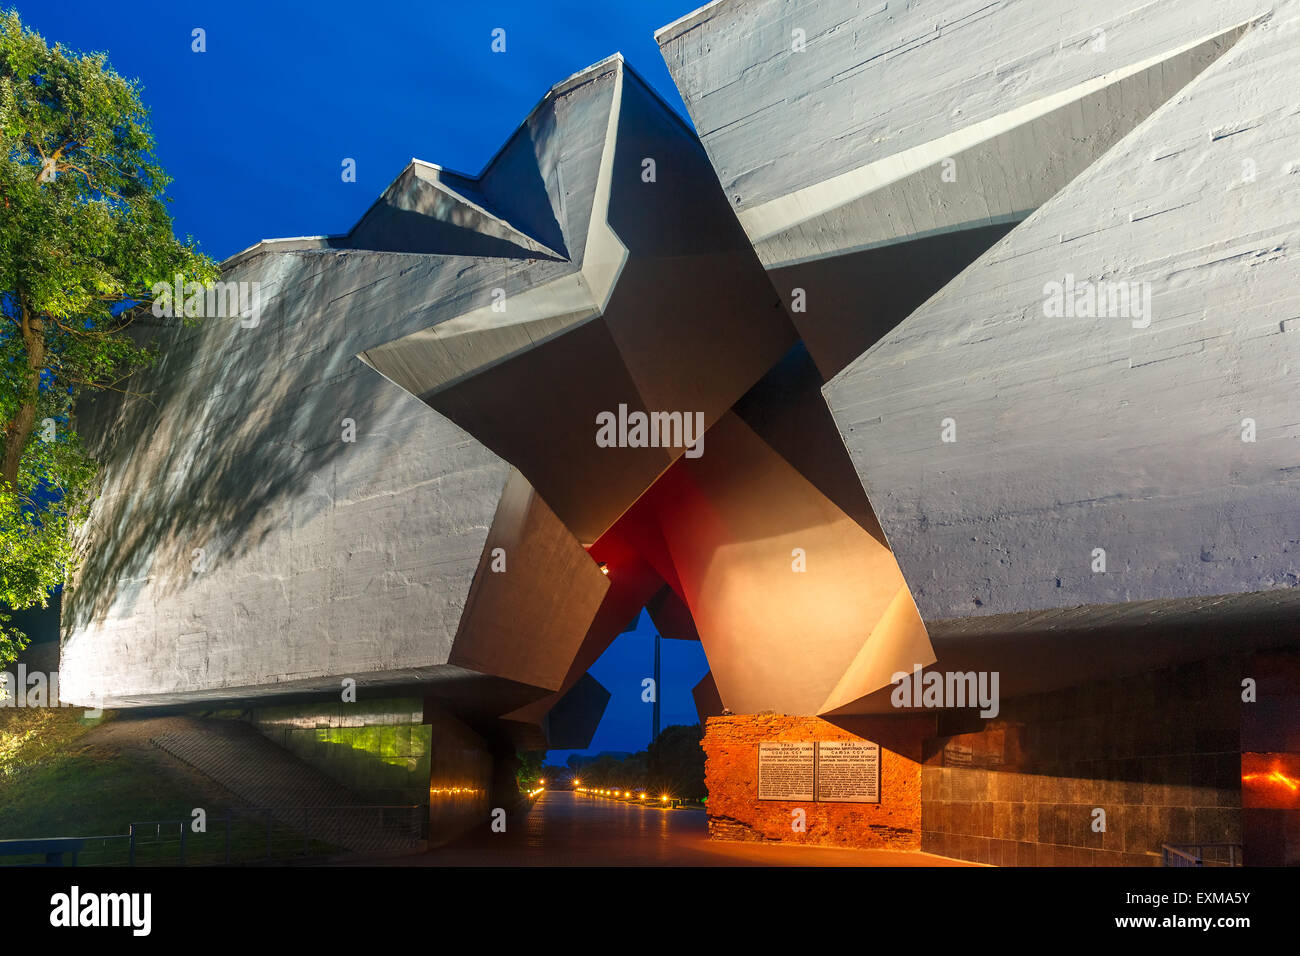 Entrance to Brest fortress at night, Belarus - Stock Image